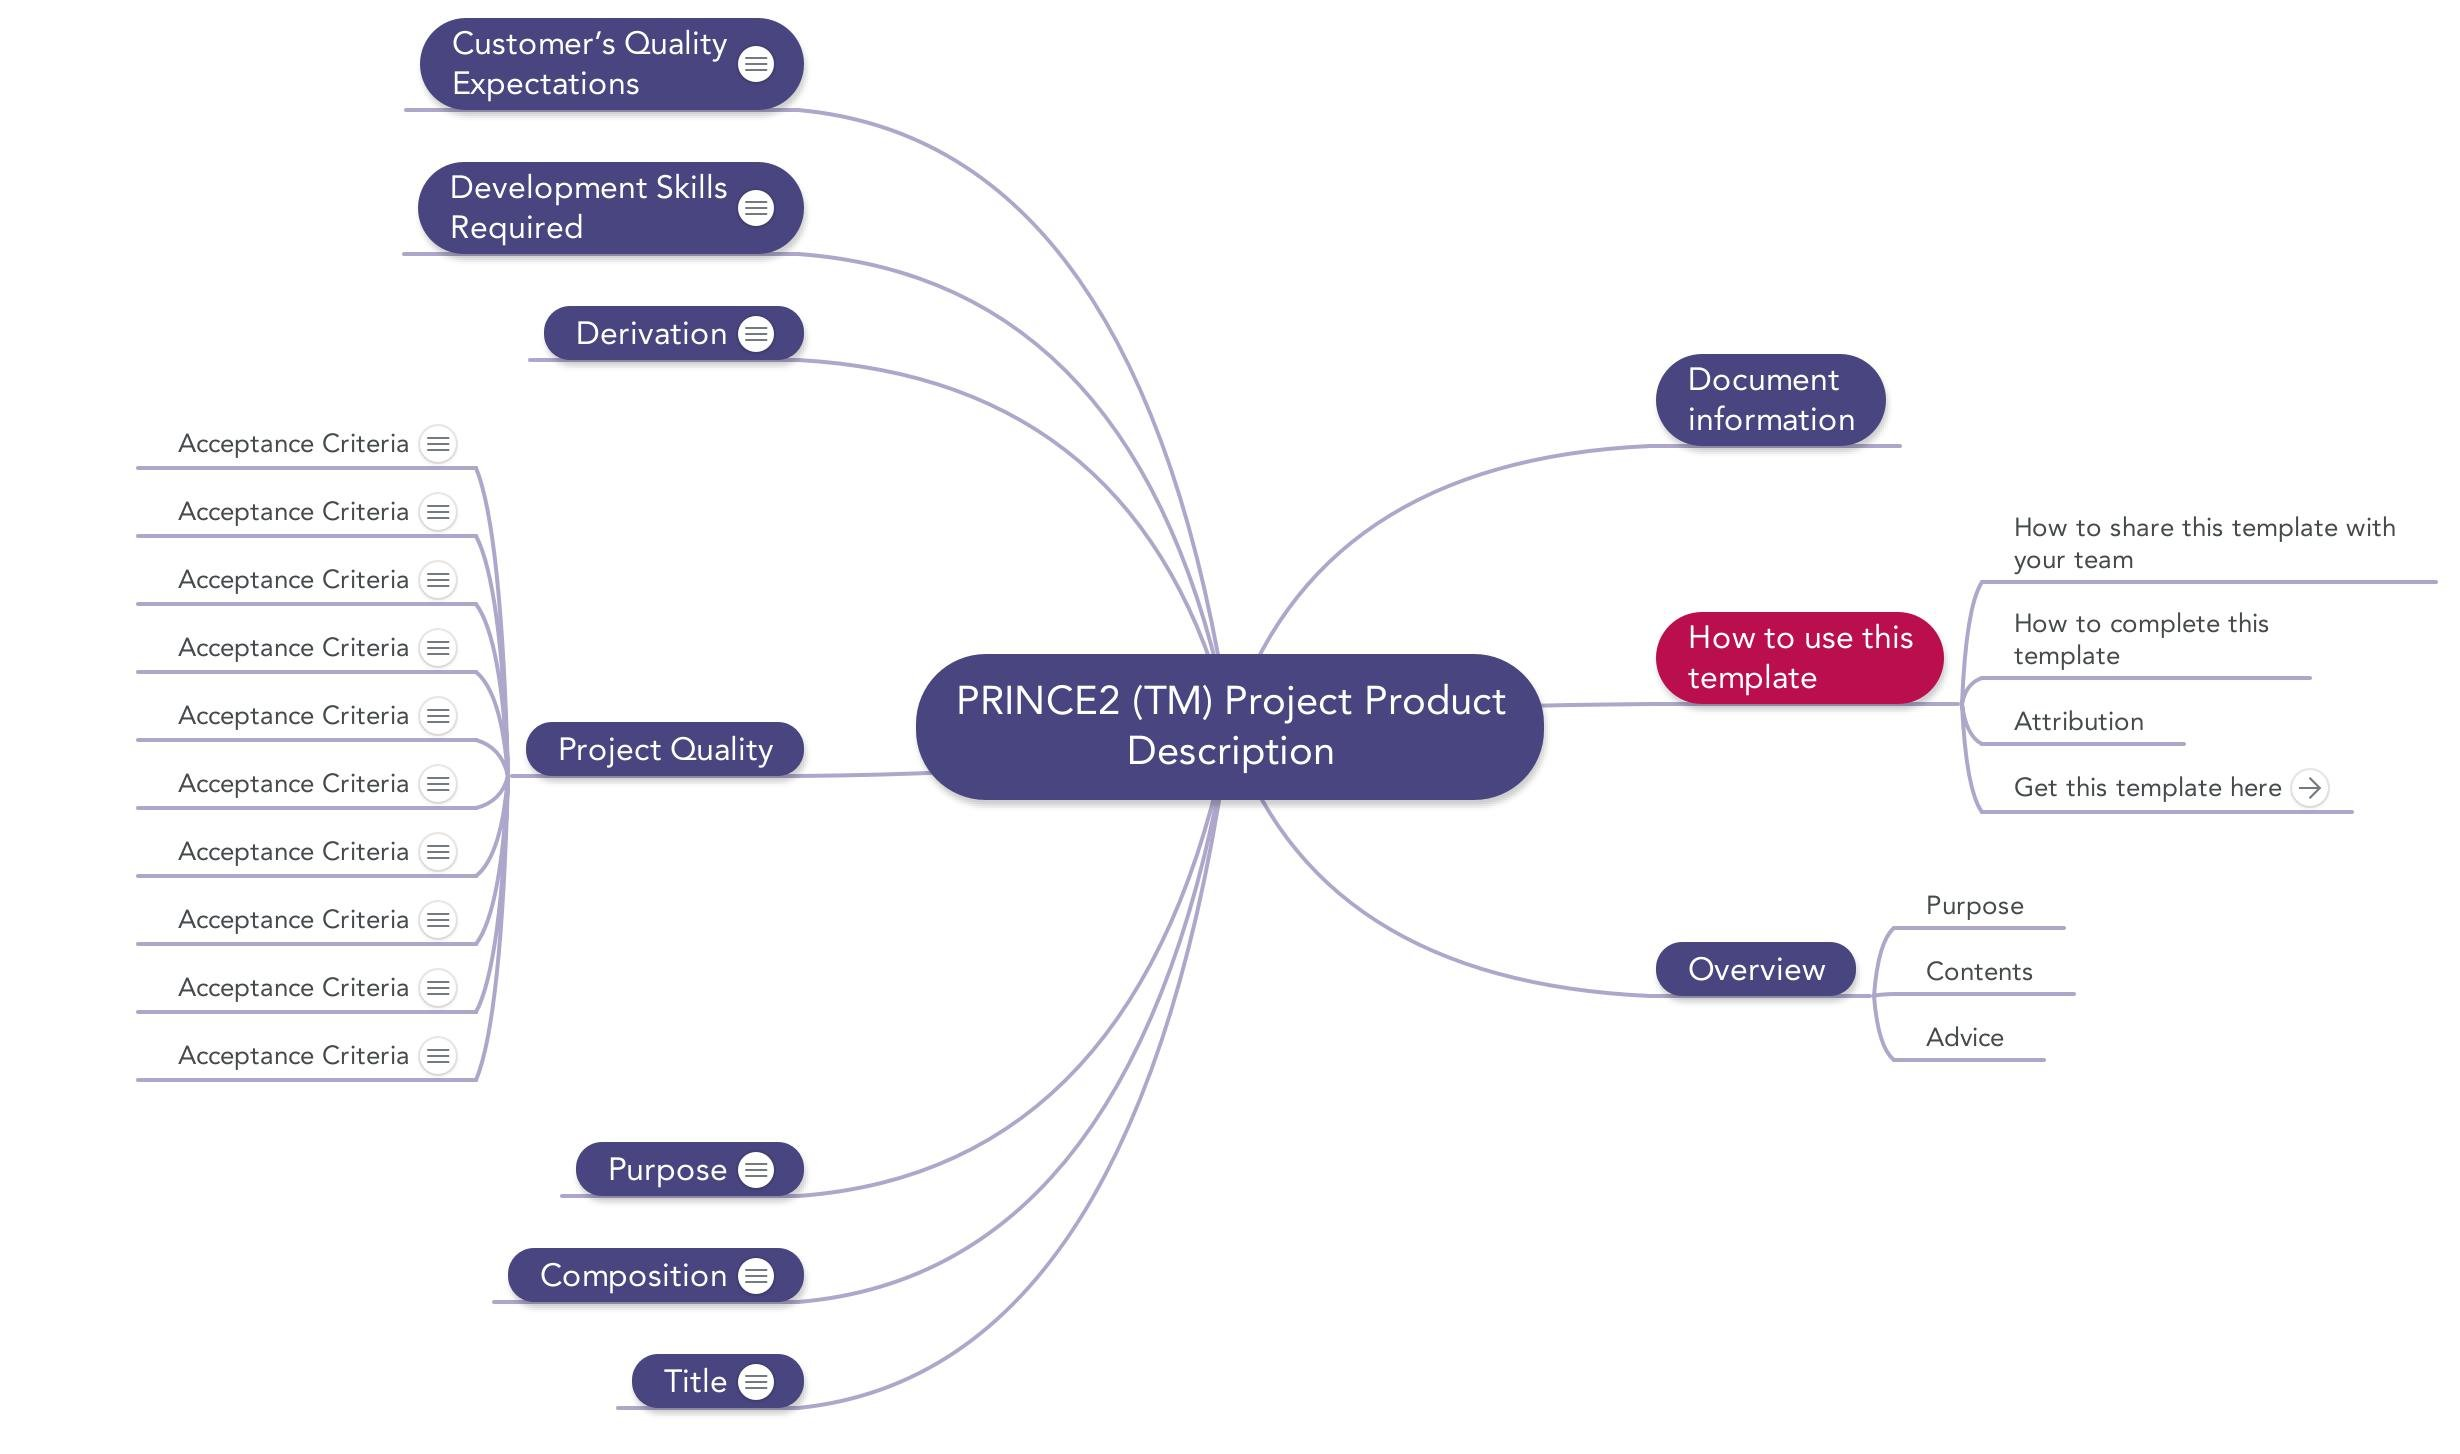 Image Of Prince Mindmap Project Product Description Template